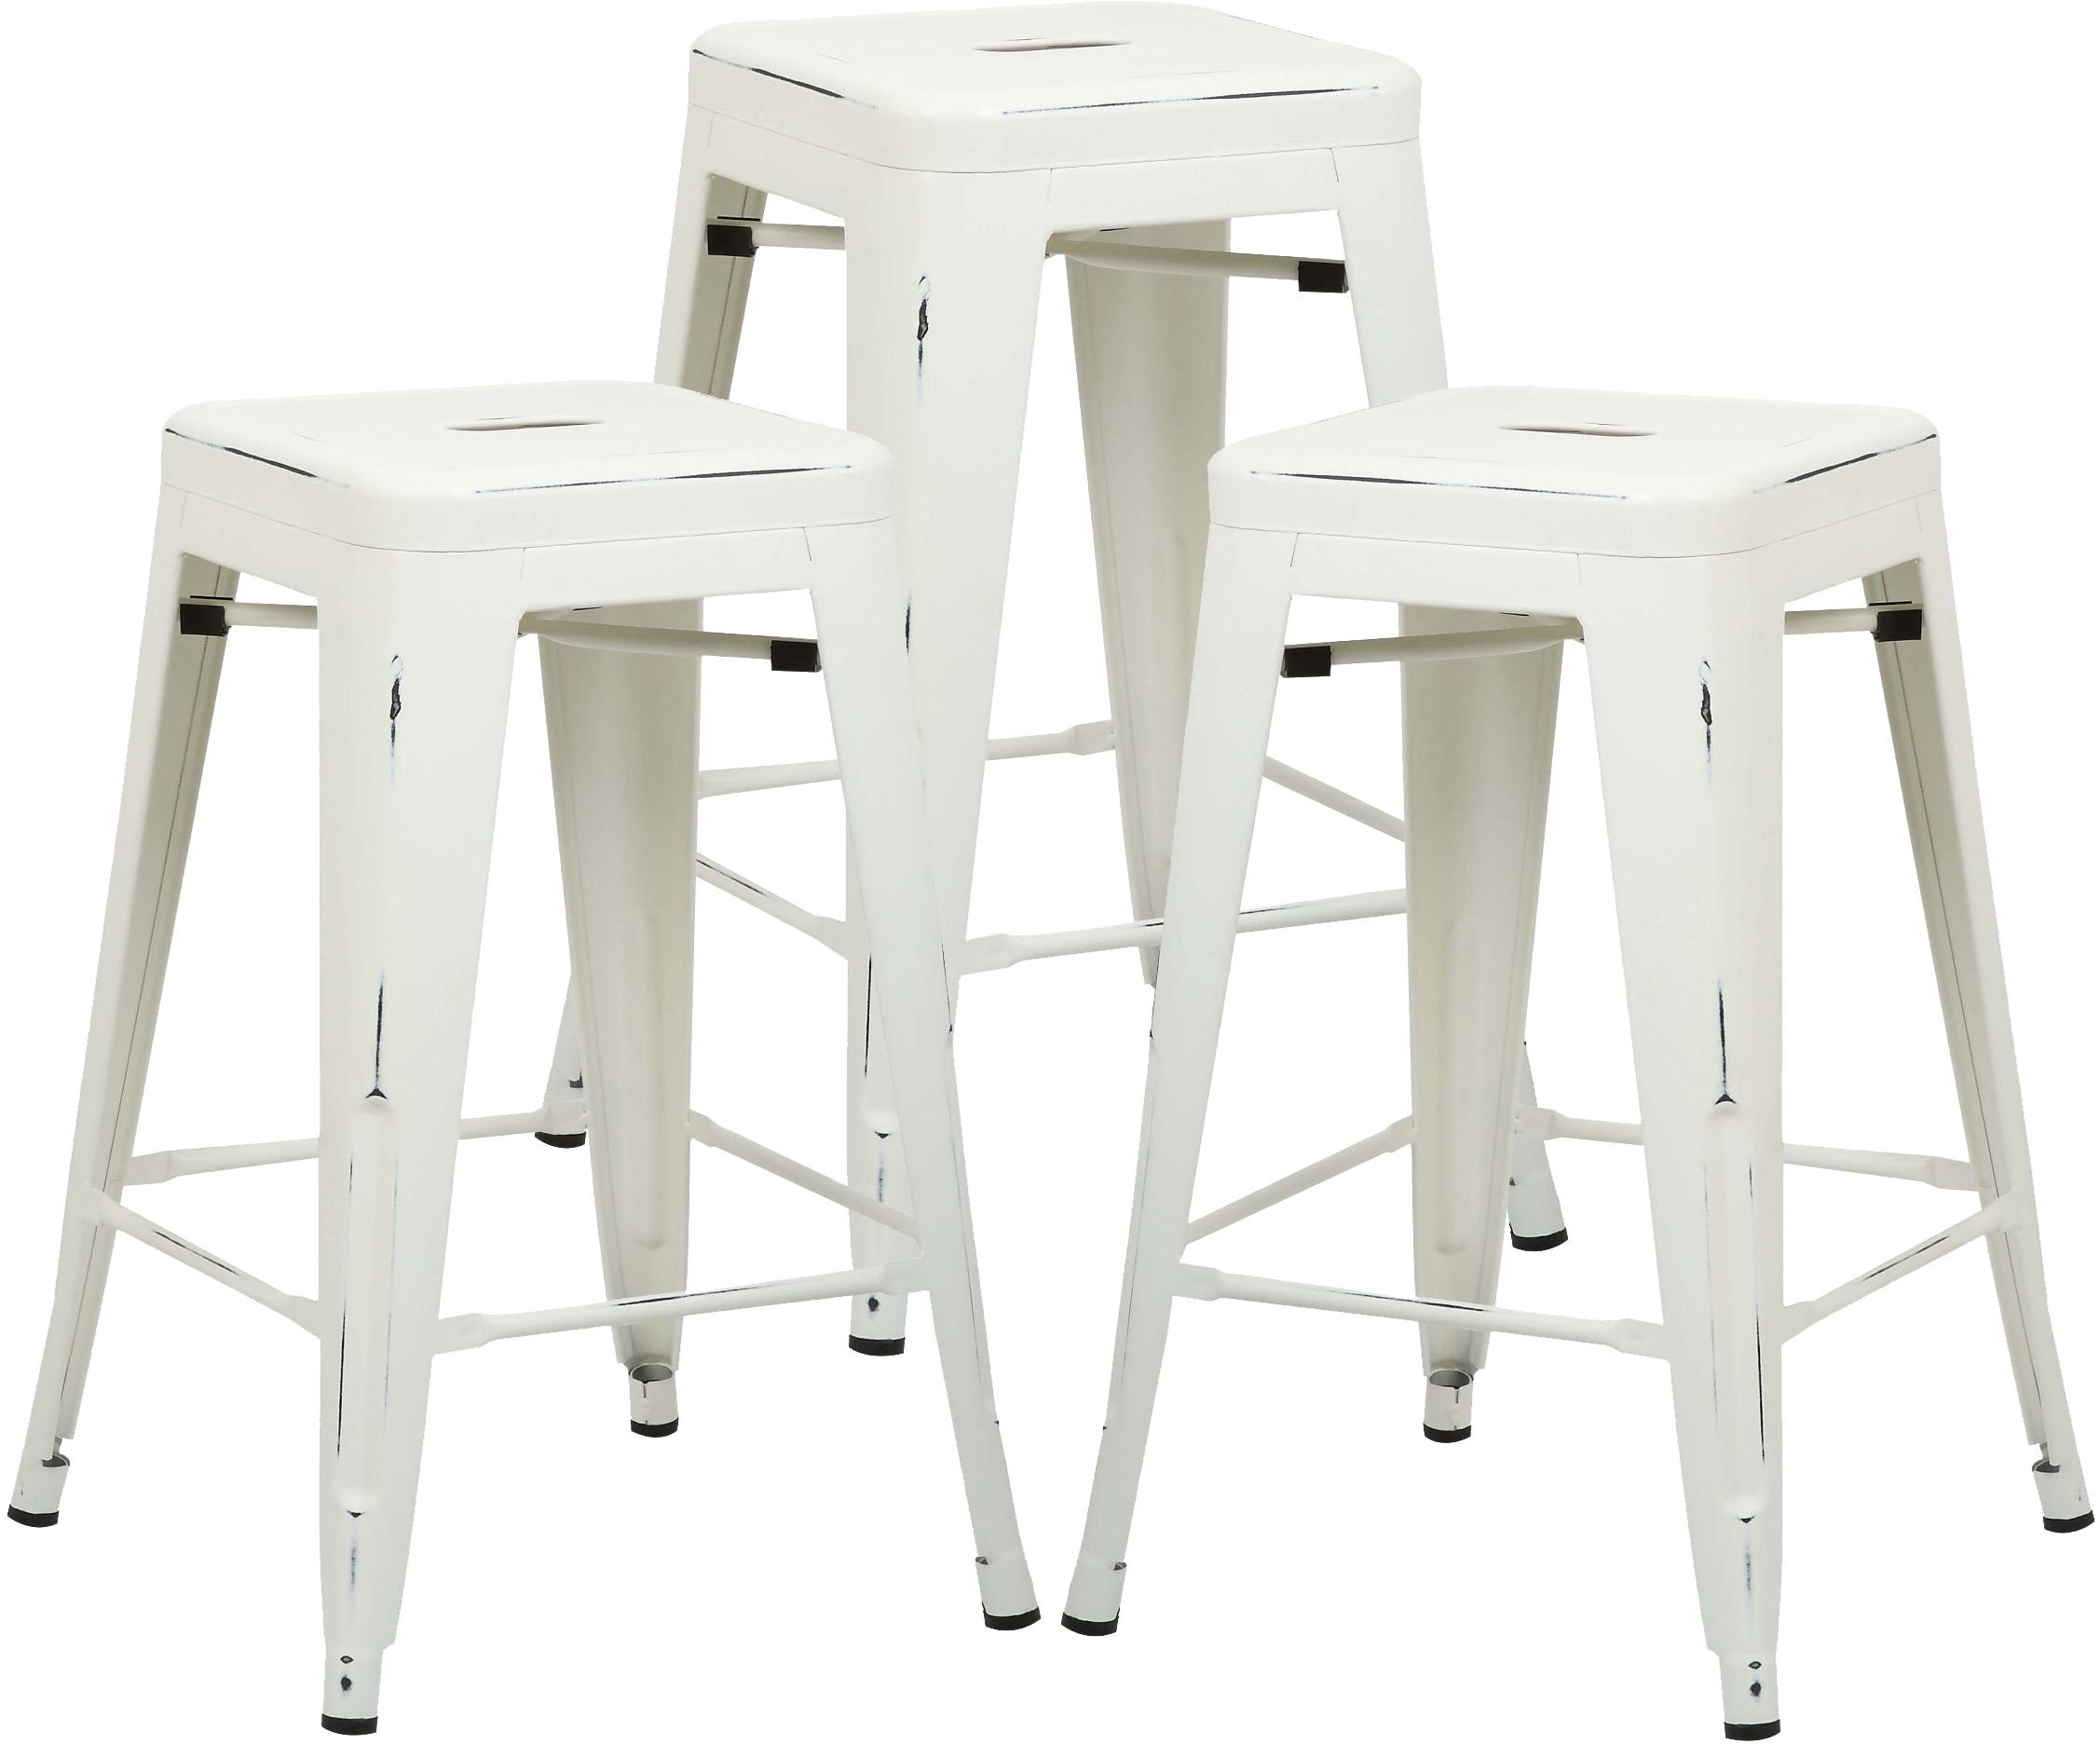 Poly and Bark Trattoria 24'' Counter Height Stool in Distressed White (Set of 3)